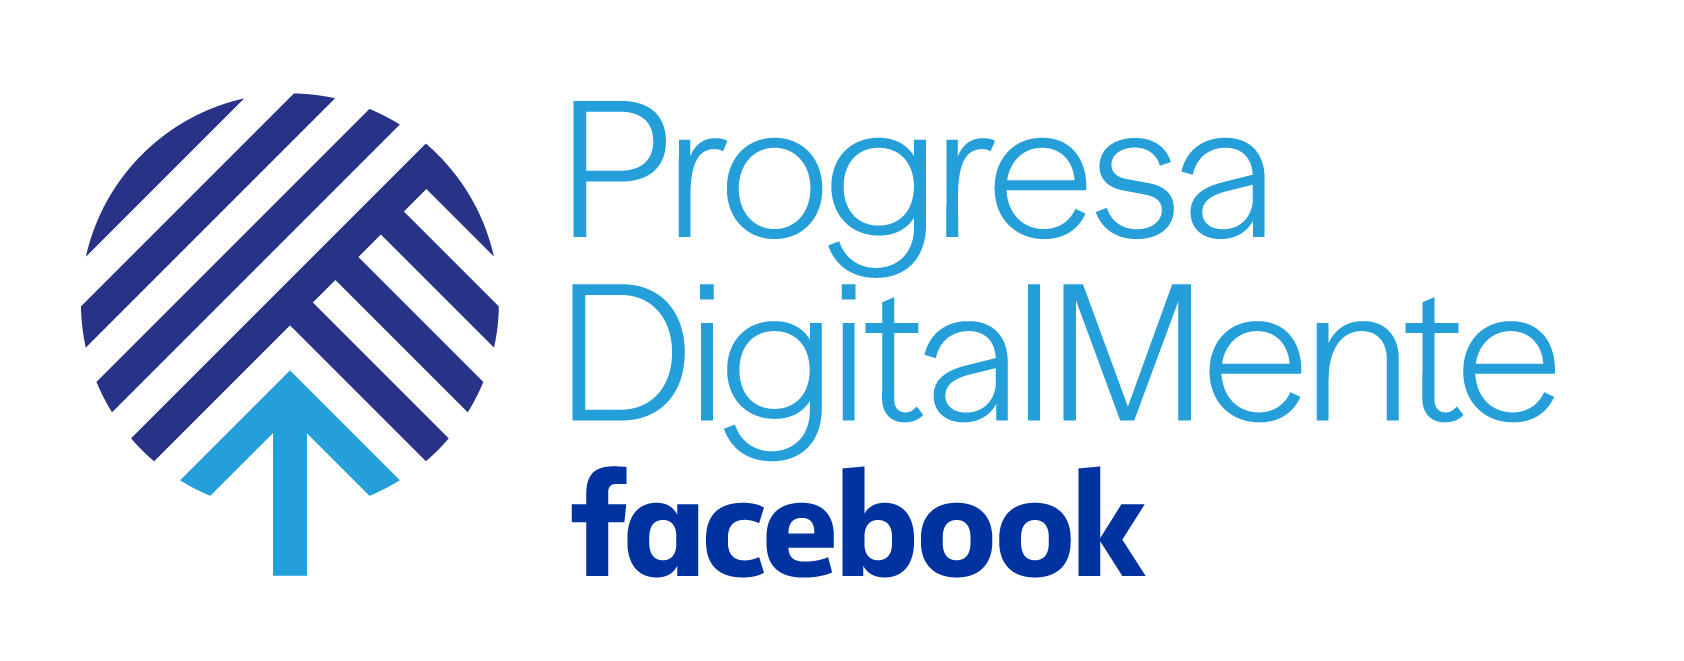 Progresa DigitalMente con Facebook.